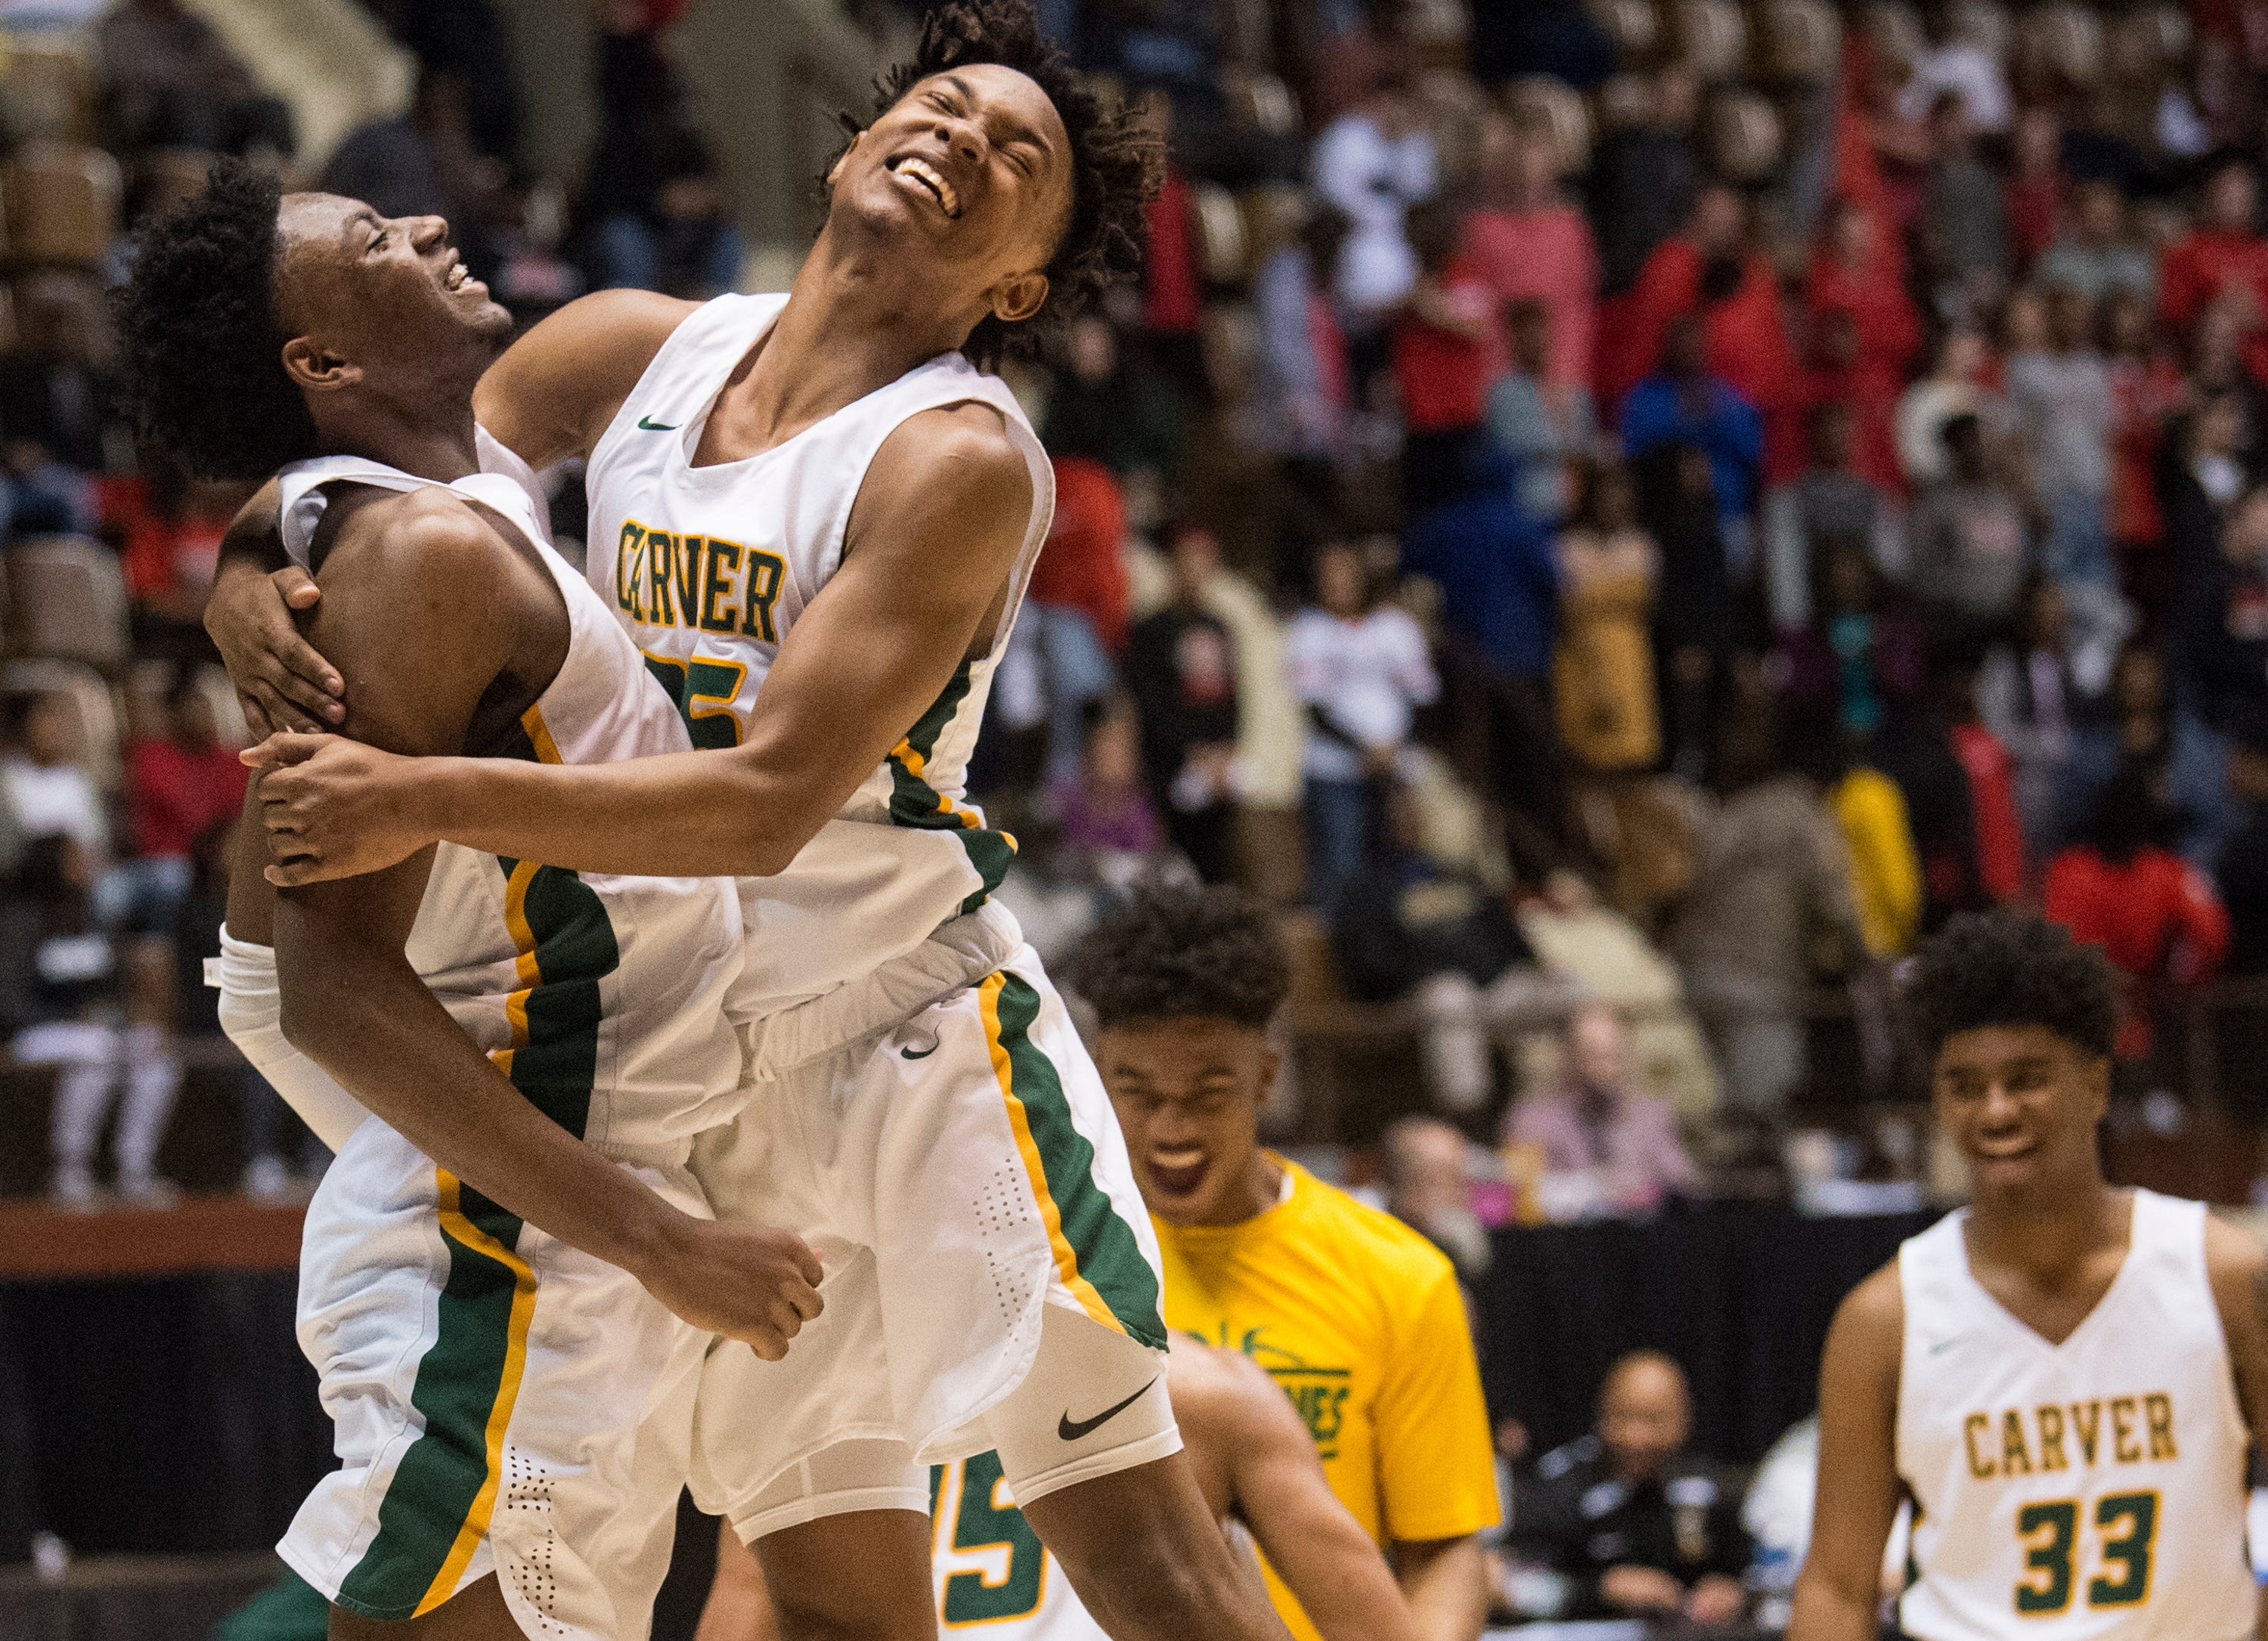 Carver's Jaykwon Walton (1) and Juwon Gaston (25) celebrate after the game during the Class 6A Southeast Regional semifinals in Montgomery, Ala., on Friday, Feb. 15, 2019. Carver defeats Opelika 44-41.